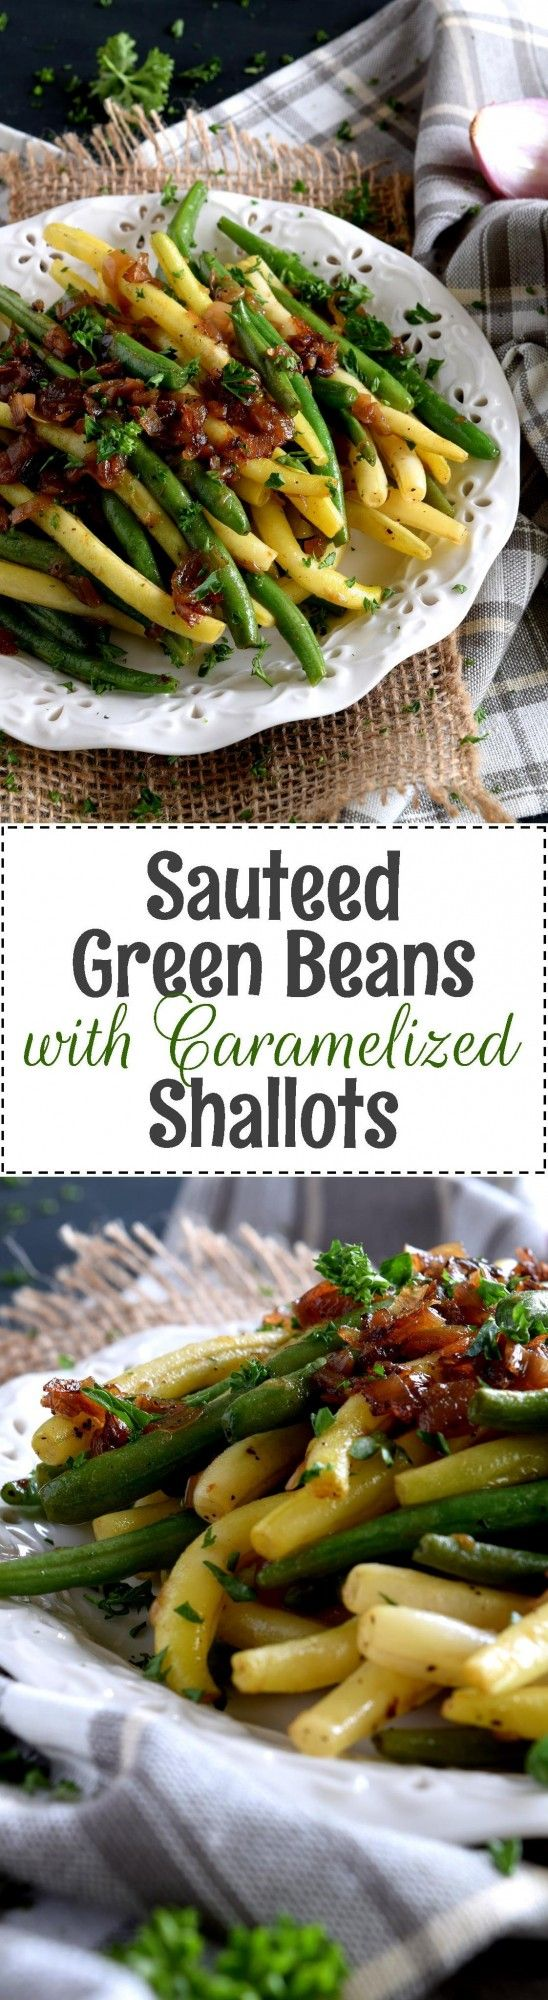 Beautifully and deliciously simple, Sauteed Green Beans with Caramelized Shallots, is a fresh, light, and easy side dish alternative to the popular green bean casserole – no need for heavy creamed soup additives here! Green beans or yellow beans, or a…